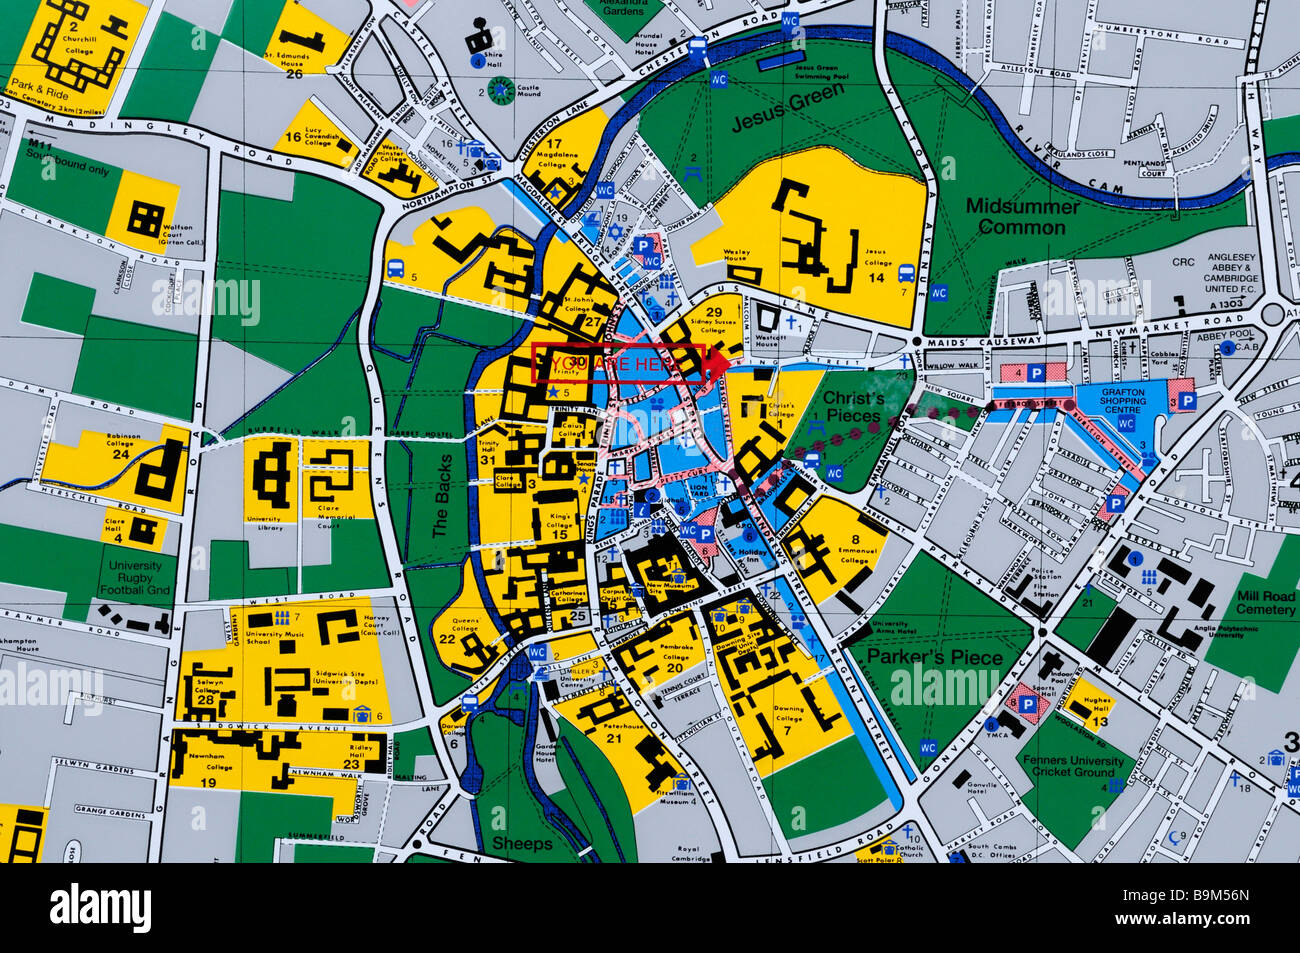 Tourist Map of Cambridge City Centre King Street Cambridge England